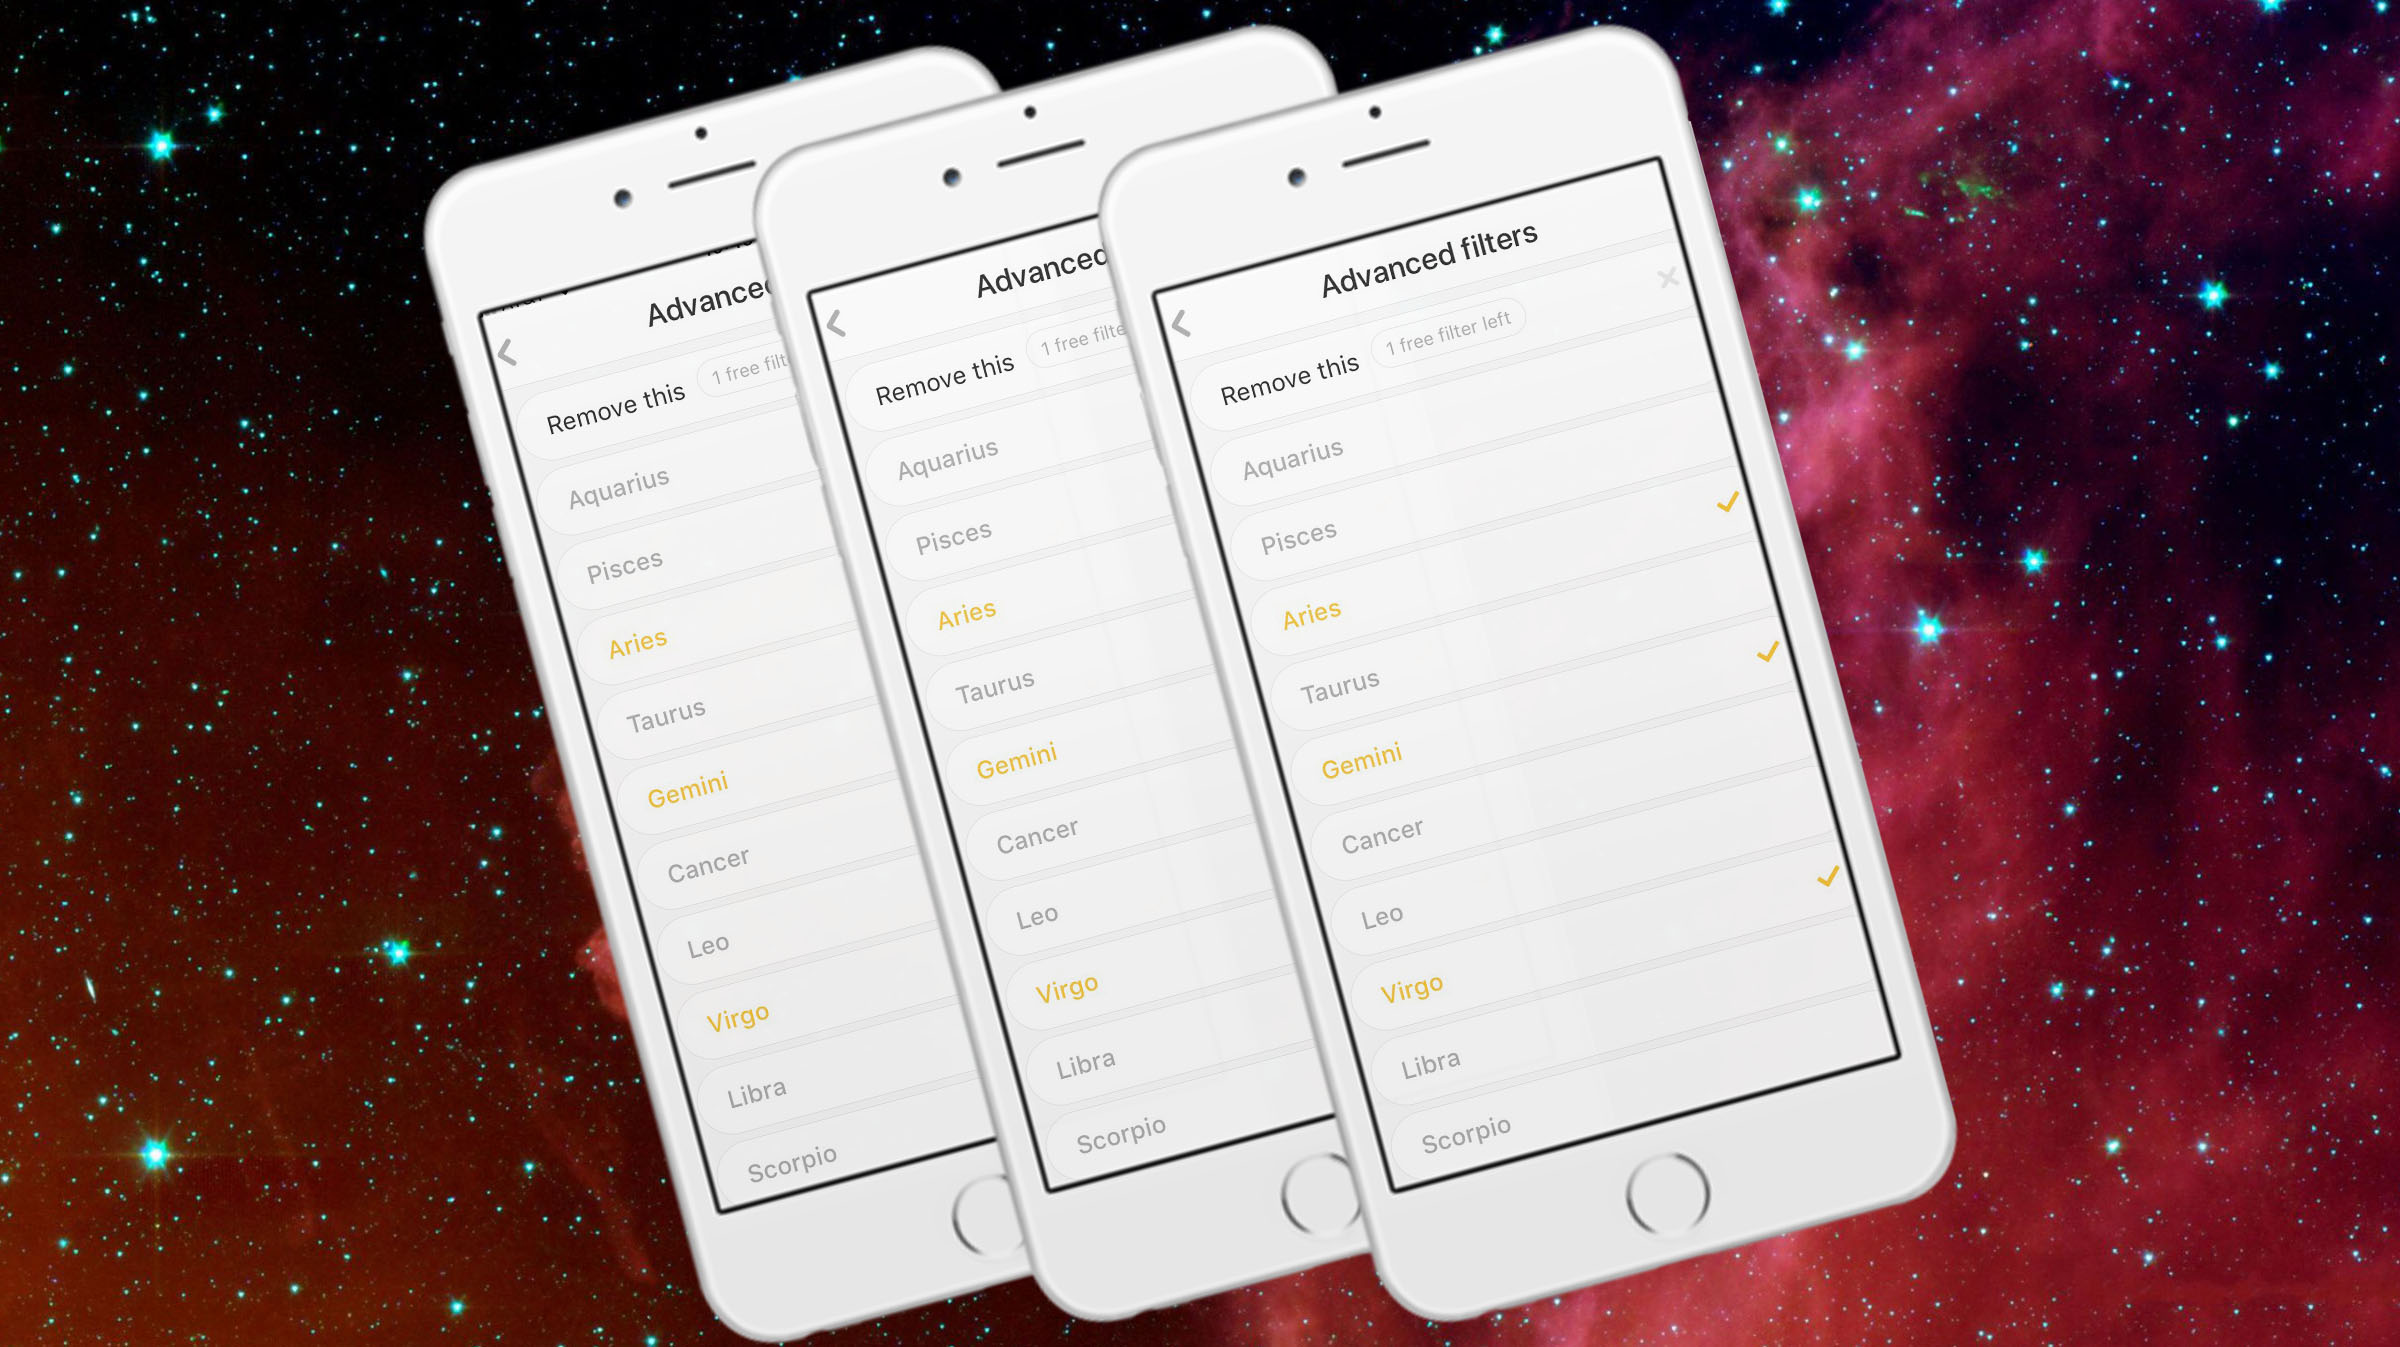 dating app based on astrological signs